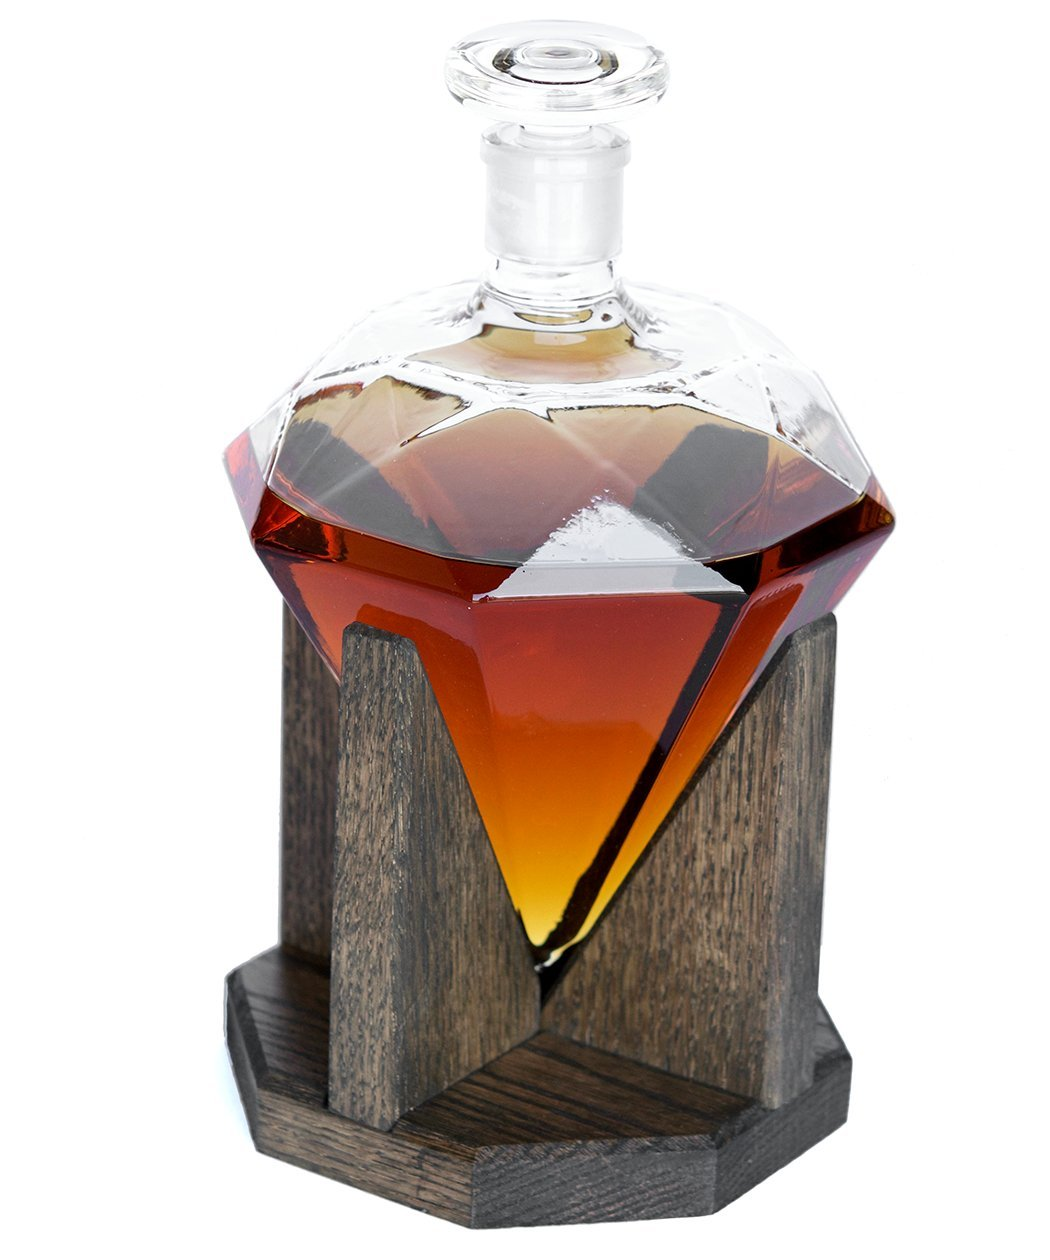 Diamond Liquor Decanter – Scotch Whiskey Decanter - 1000ml Decanter for Alcohol - Vodka, Bourbon, Rum, Wine, Whiskey, Tequila or Even Mouthwash - Glass Diamond Decanter from Prestige Decanters